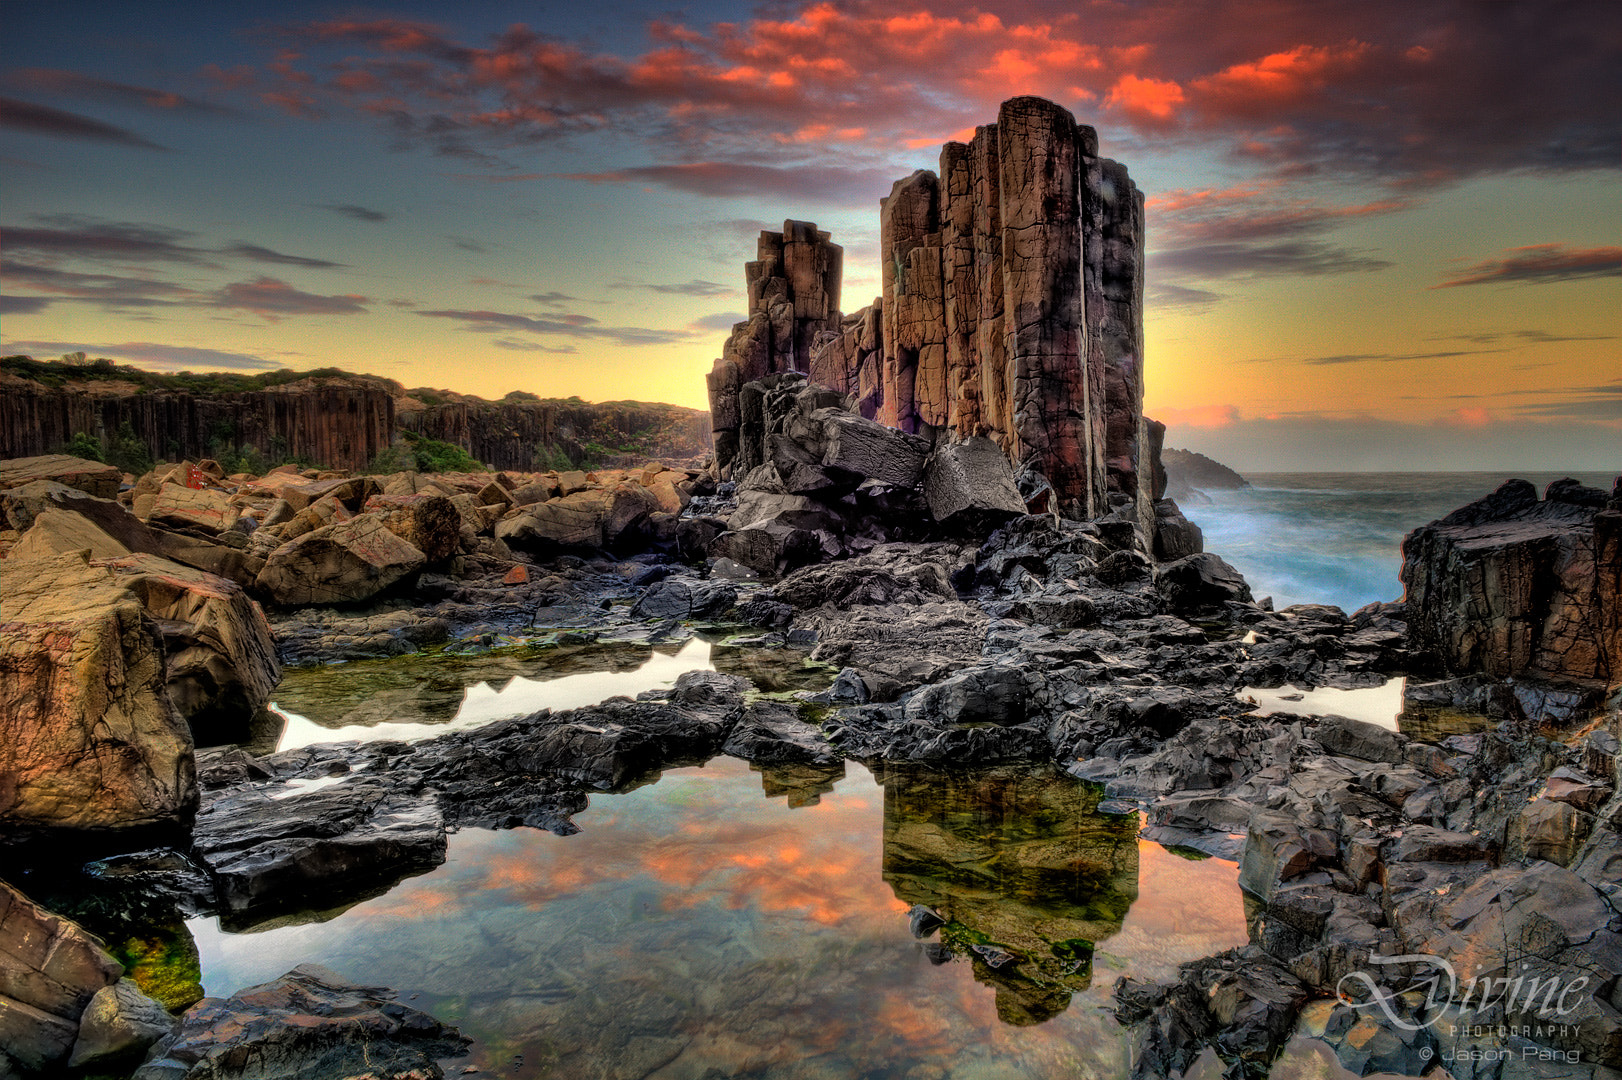 Photograph Bombo Reflections by Jason Pang on 500px